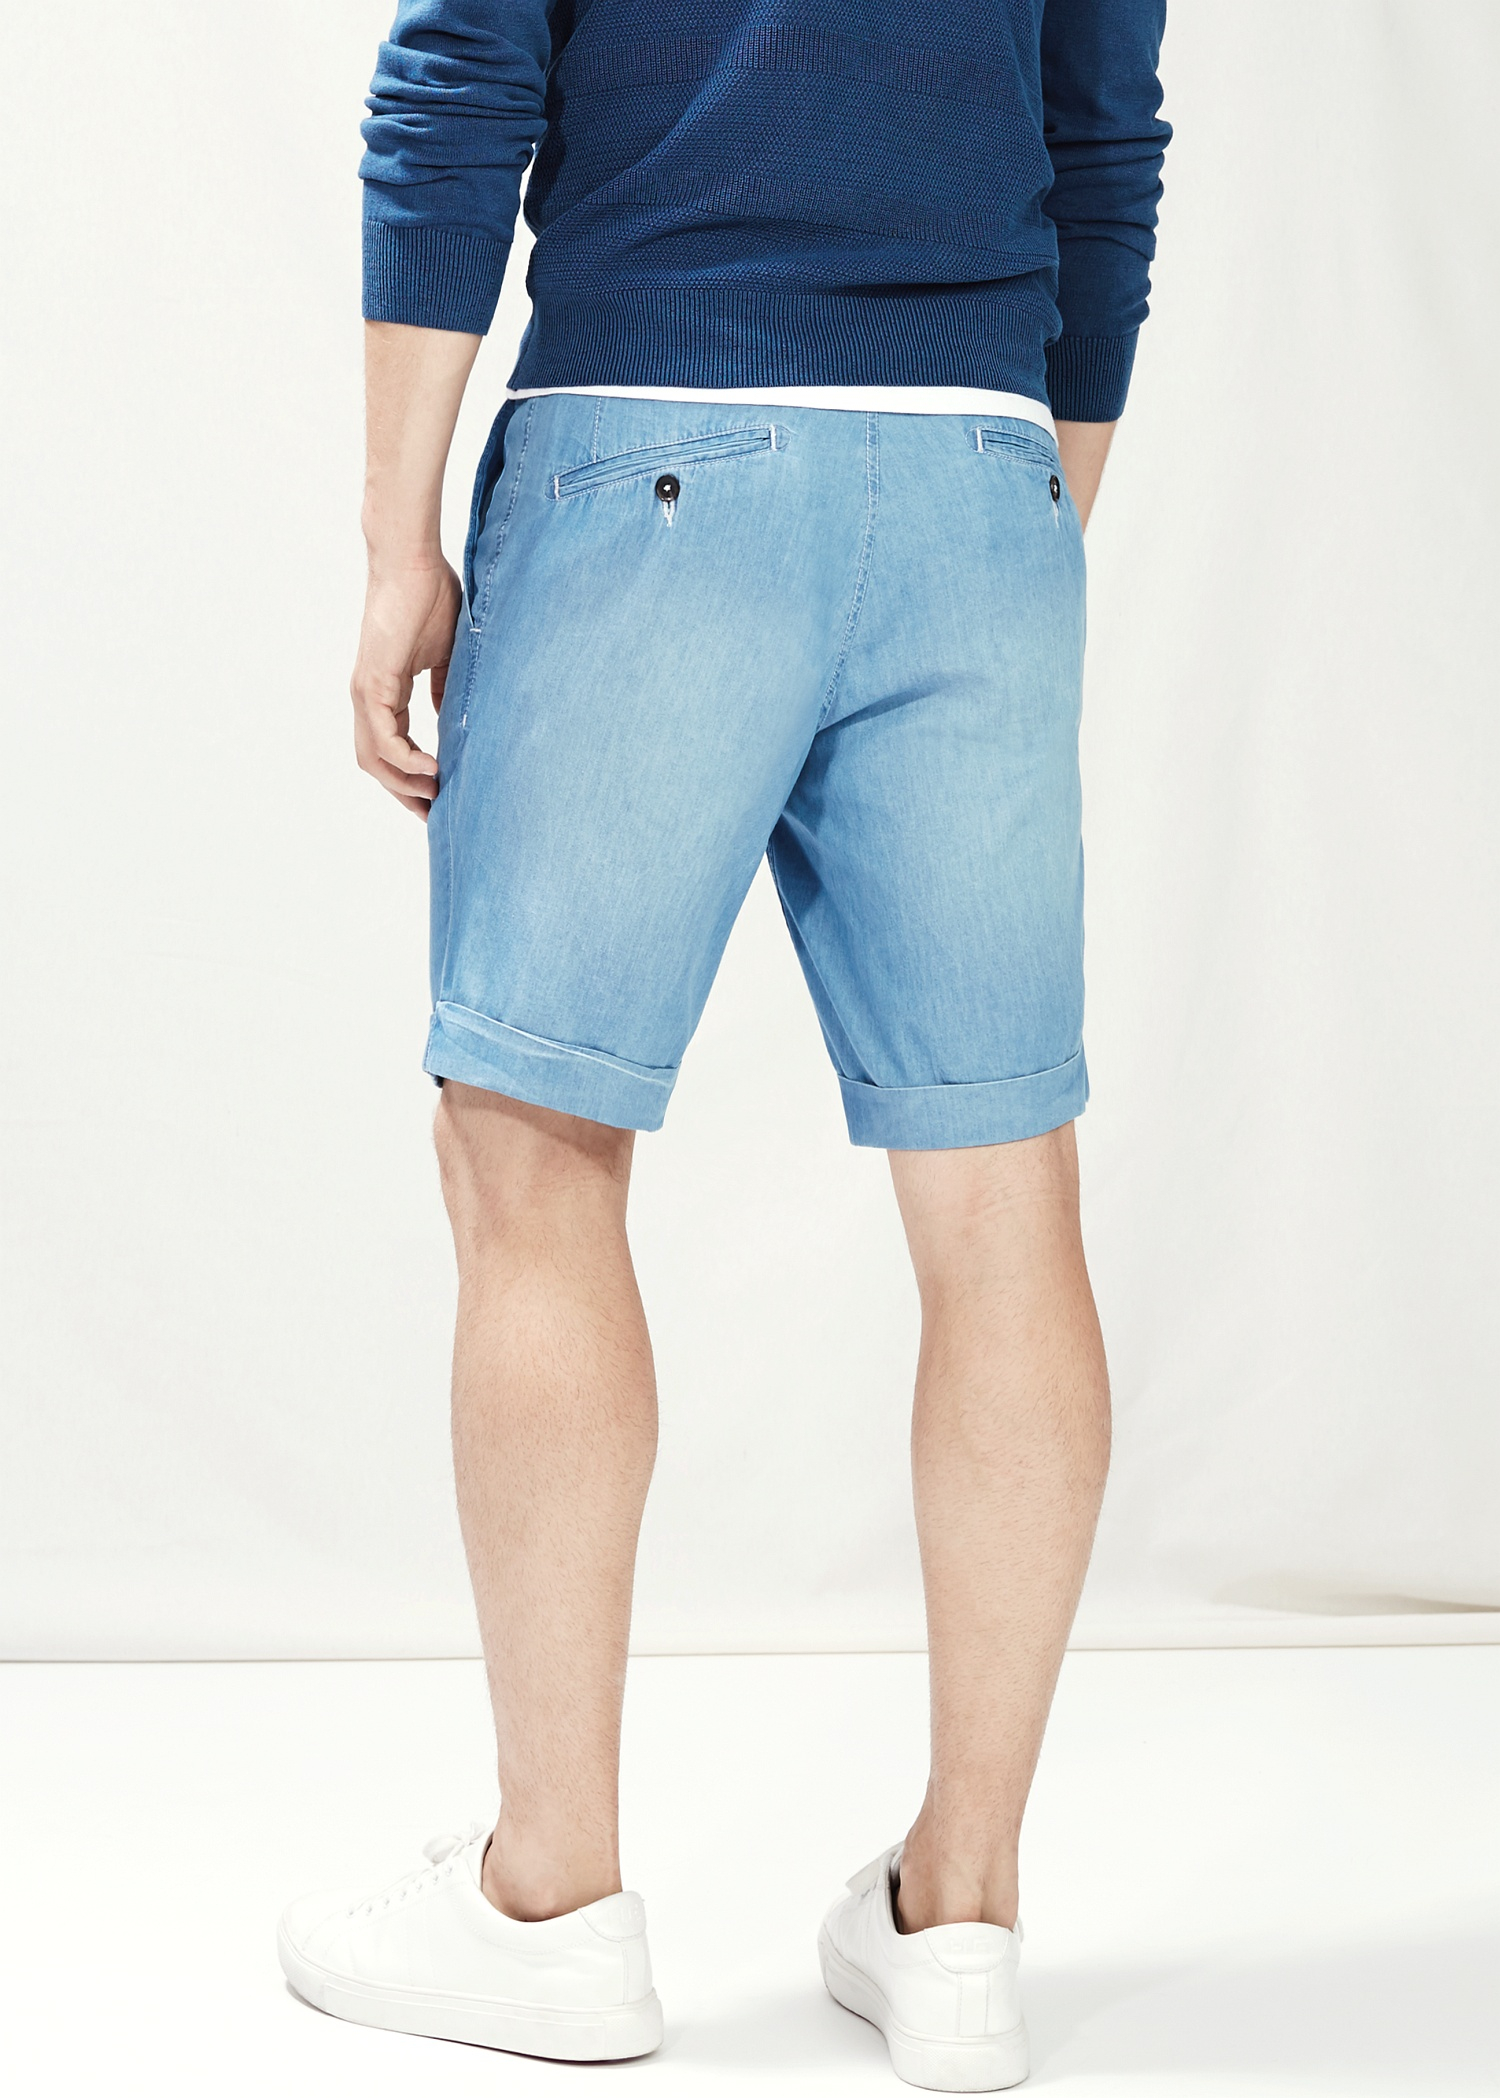 c41aa32dc Mango Chambray Bermuda Shorts in Blue for Men - Lyst